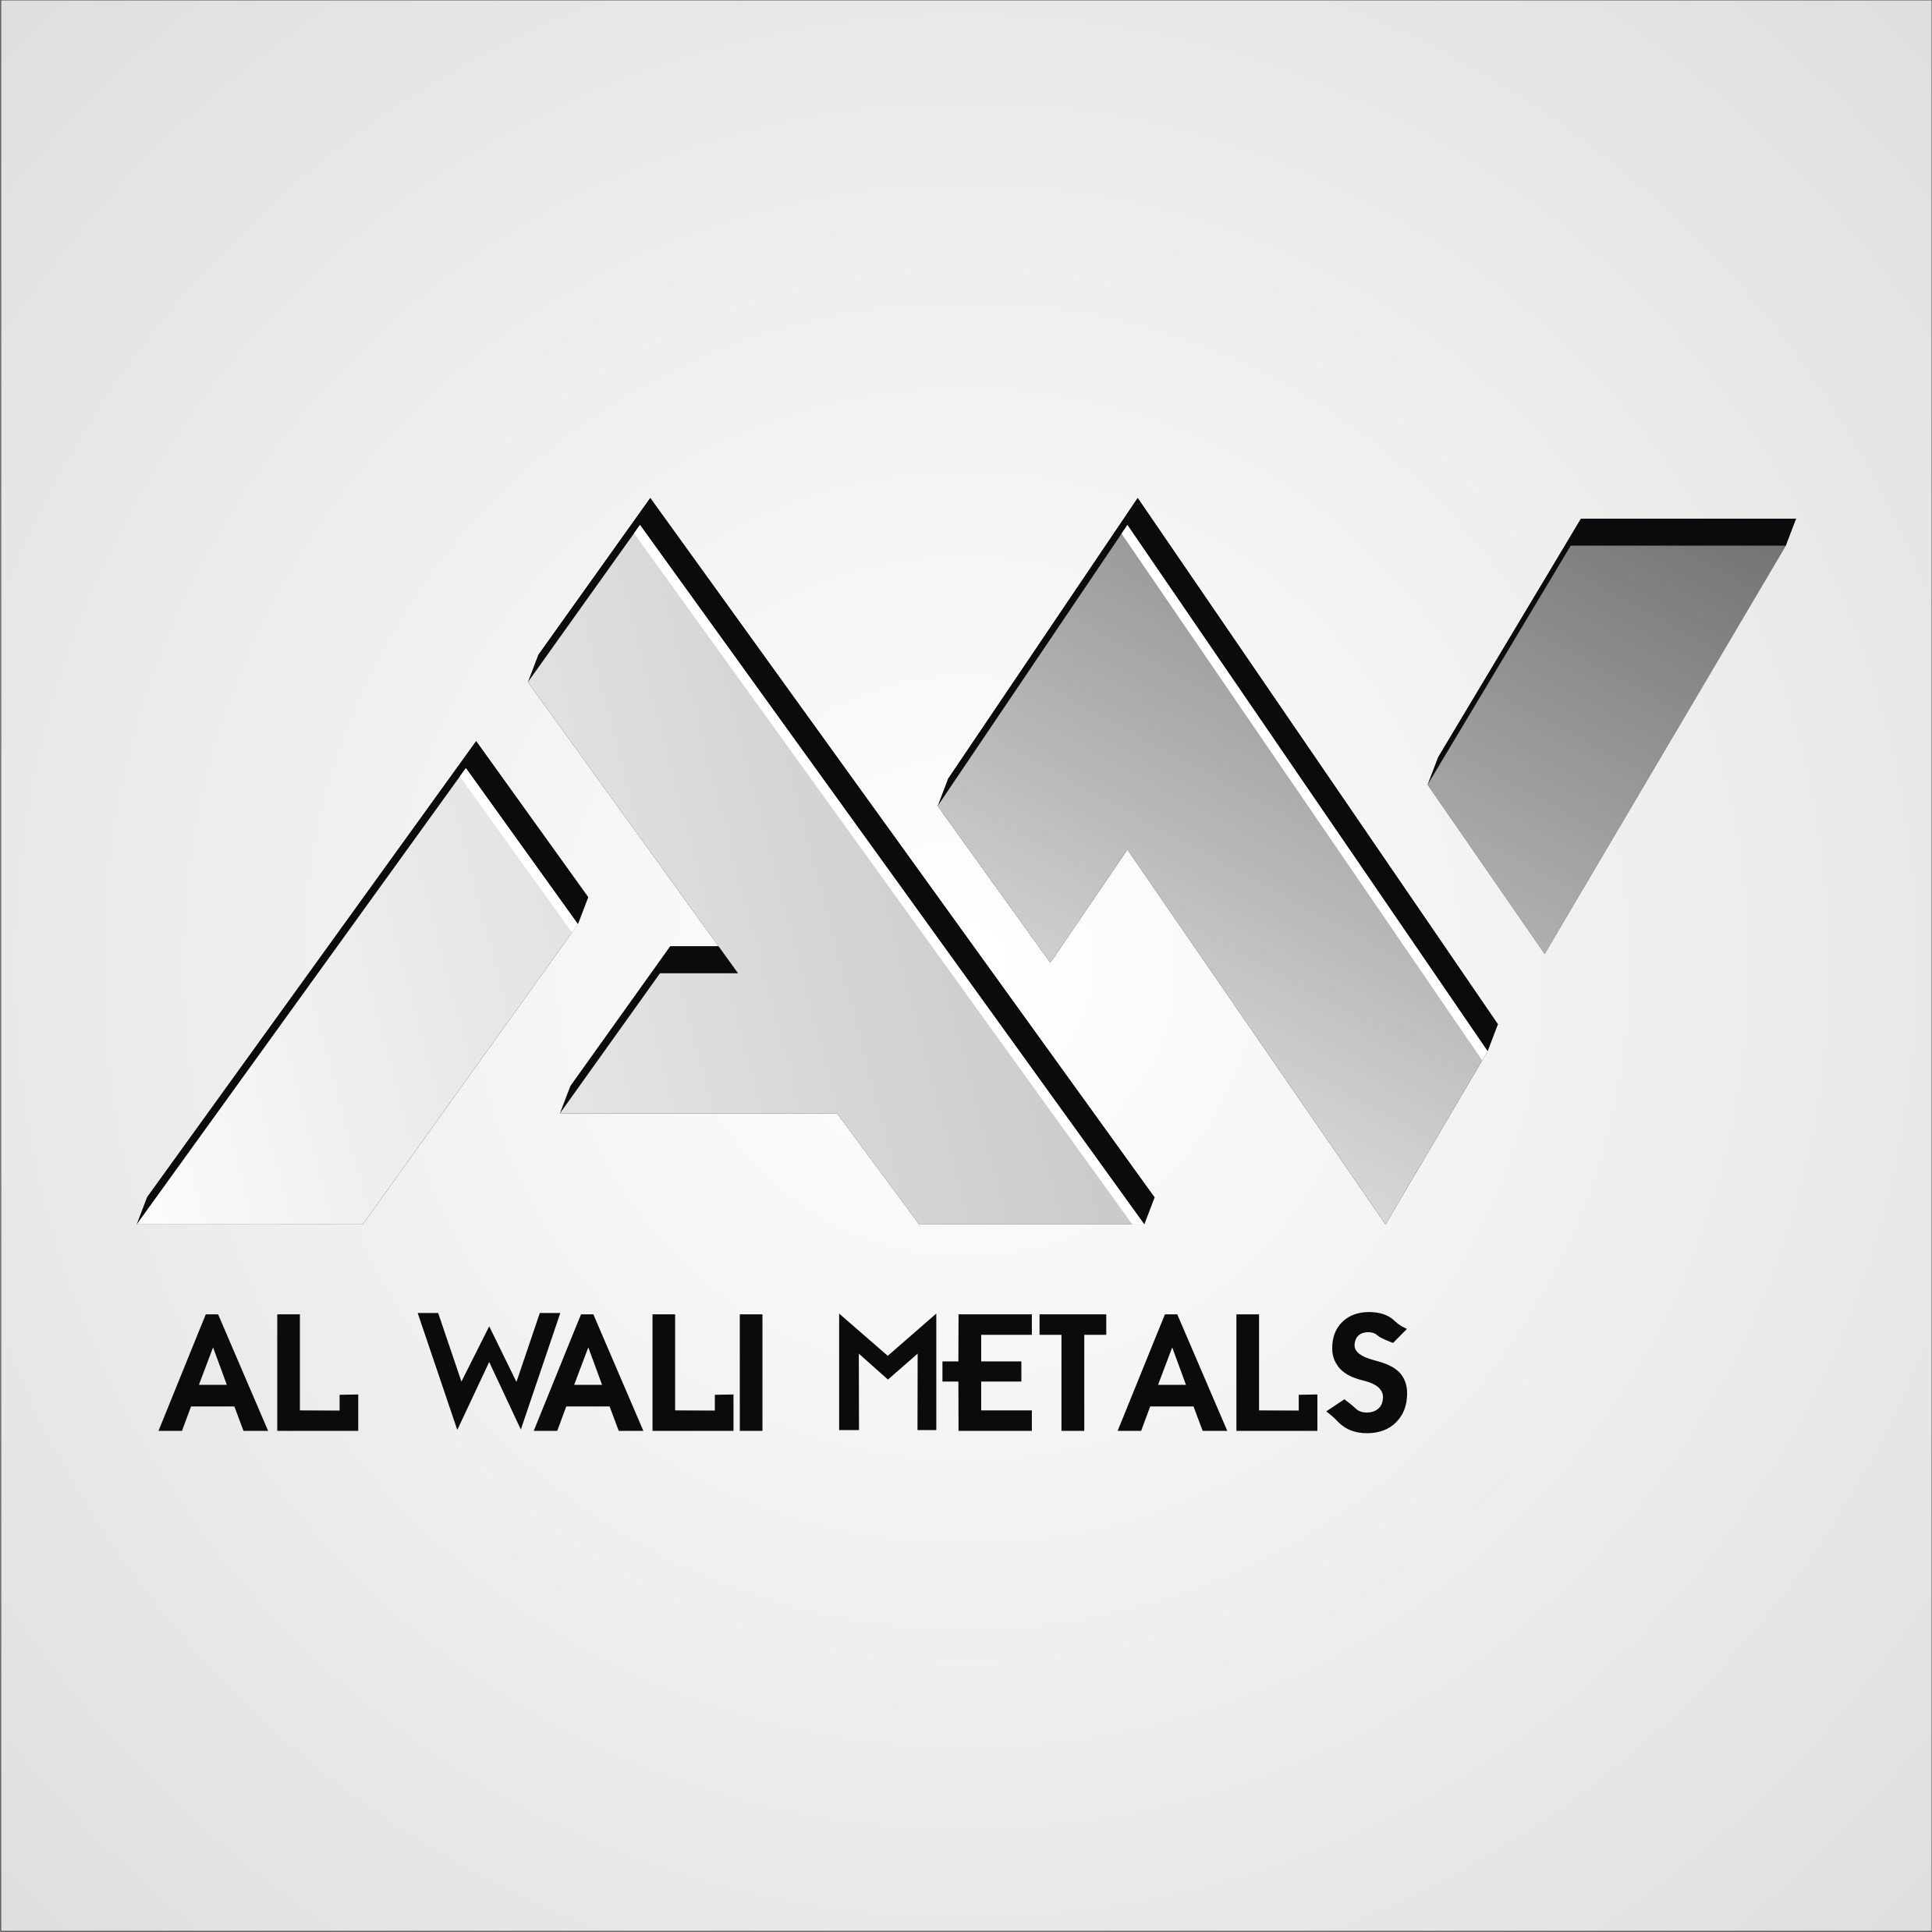 Logo Design by Private User - Entry No. 115 in the Logo Design Contest Inspiring Logo Design for Al Wali Metals.